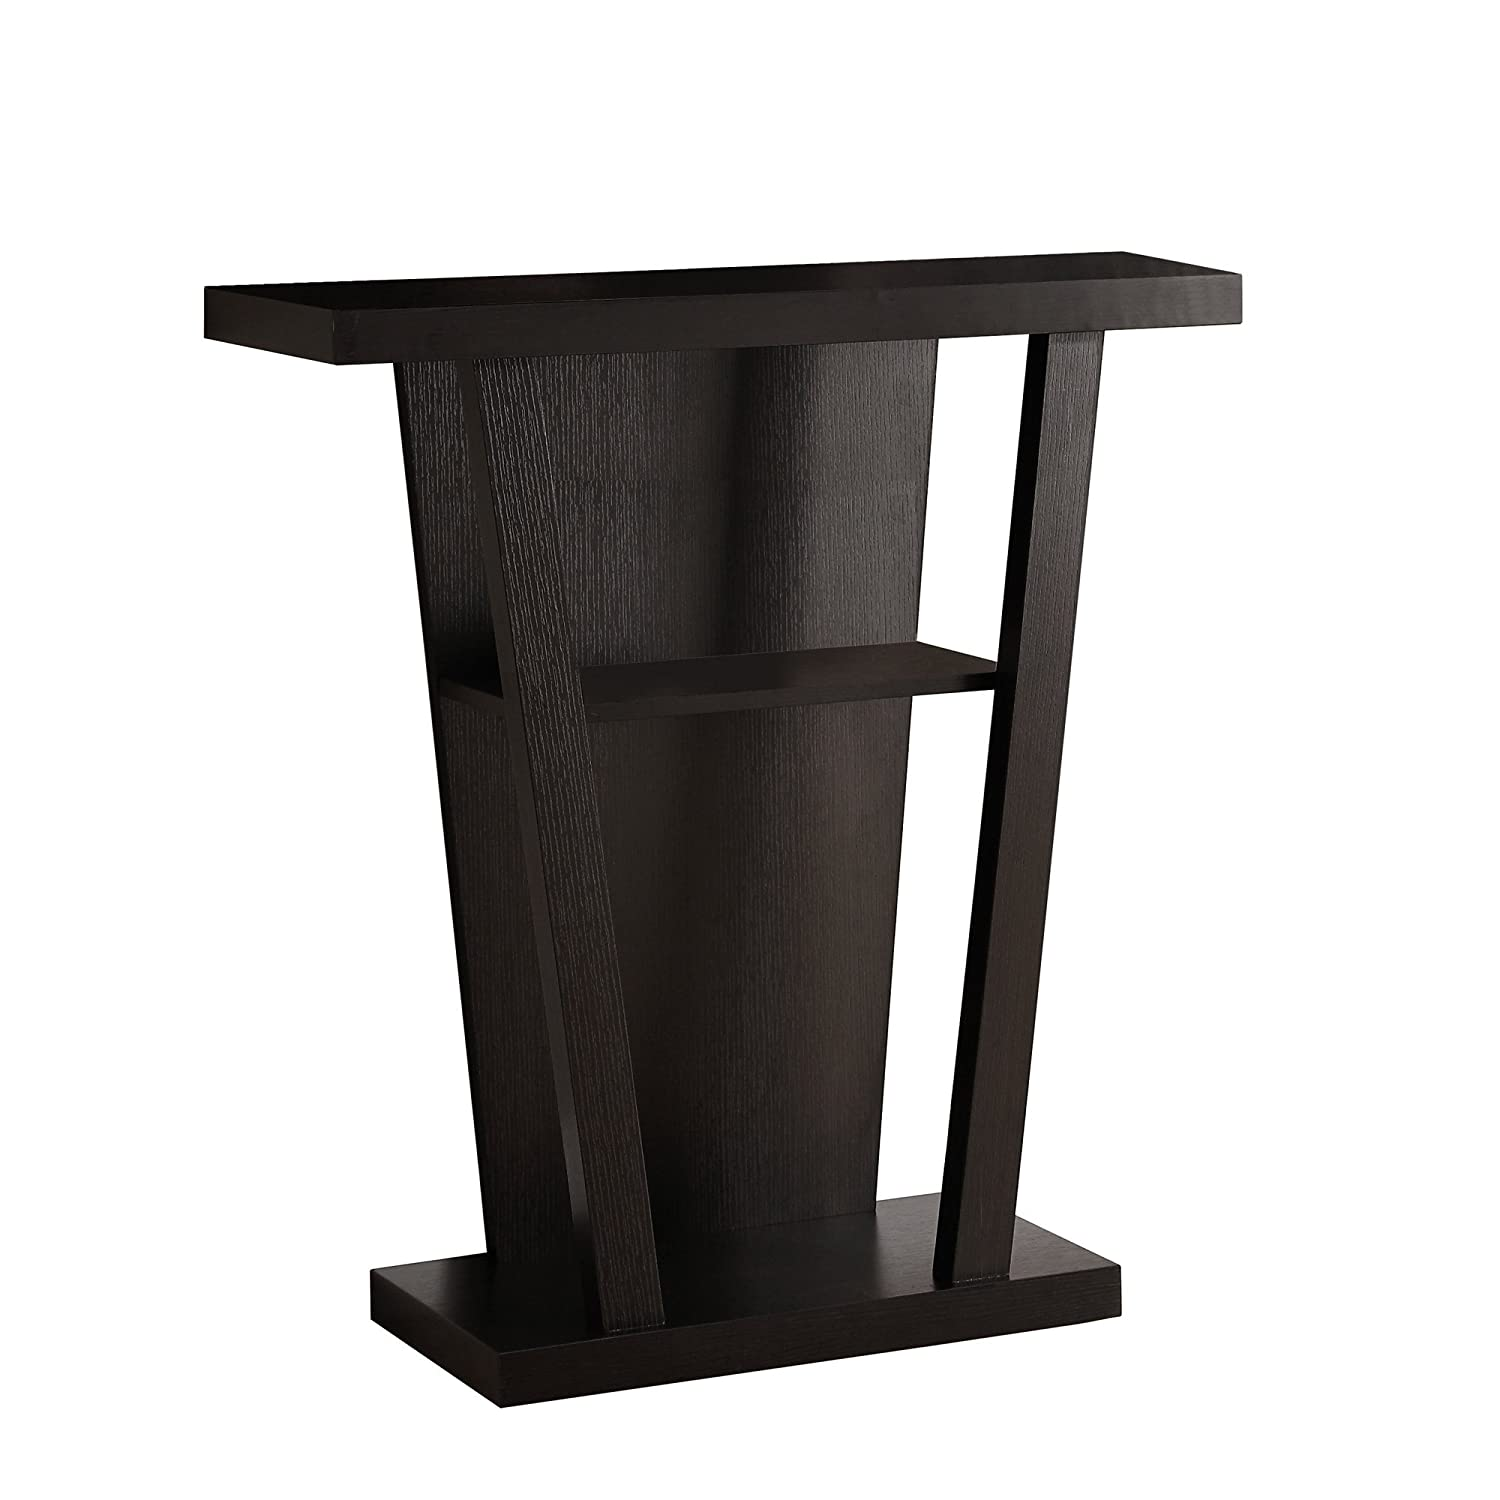 Cappuccino Finish Monarch Specialties I 2453 Accent Table 32  L Hall Console, Dark Taupe